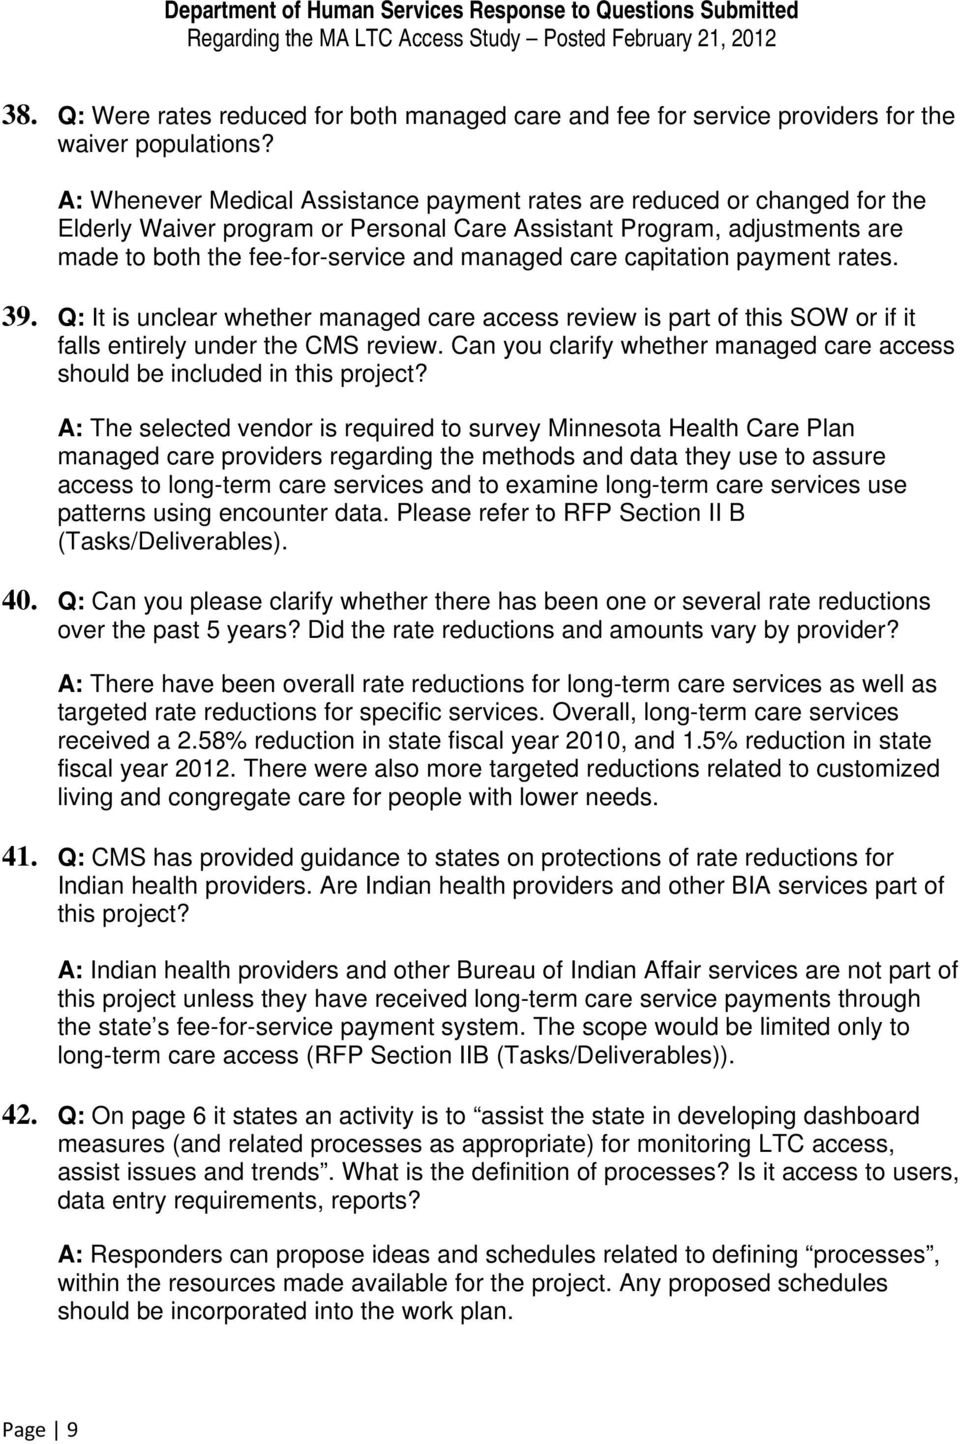 care capitation payment rates. 39. Q: It is unclear whether managed care access review is part of this SOW or if it falls entirely under the CMS review.